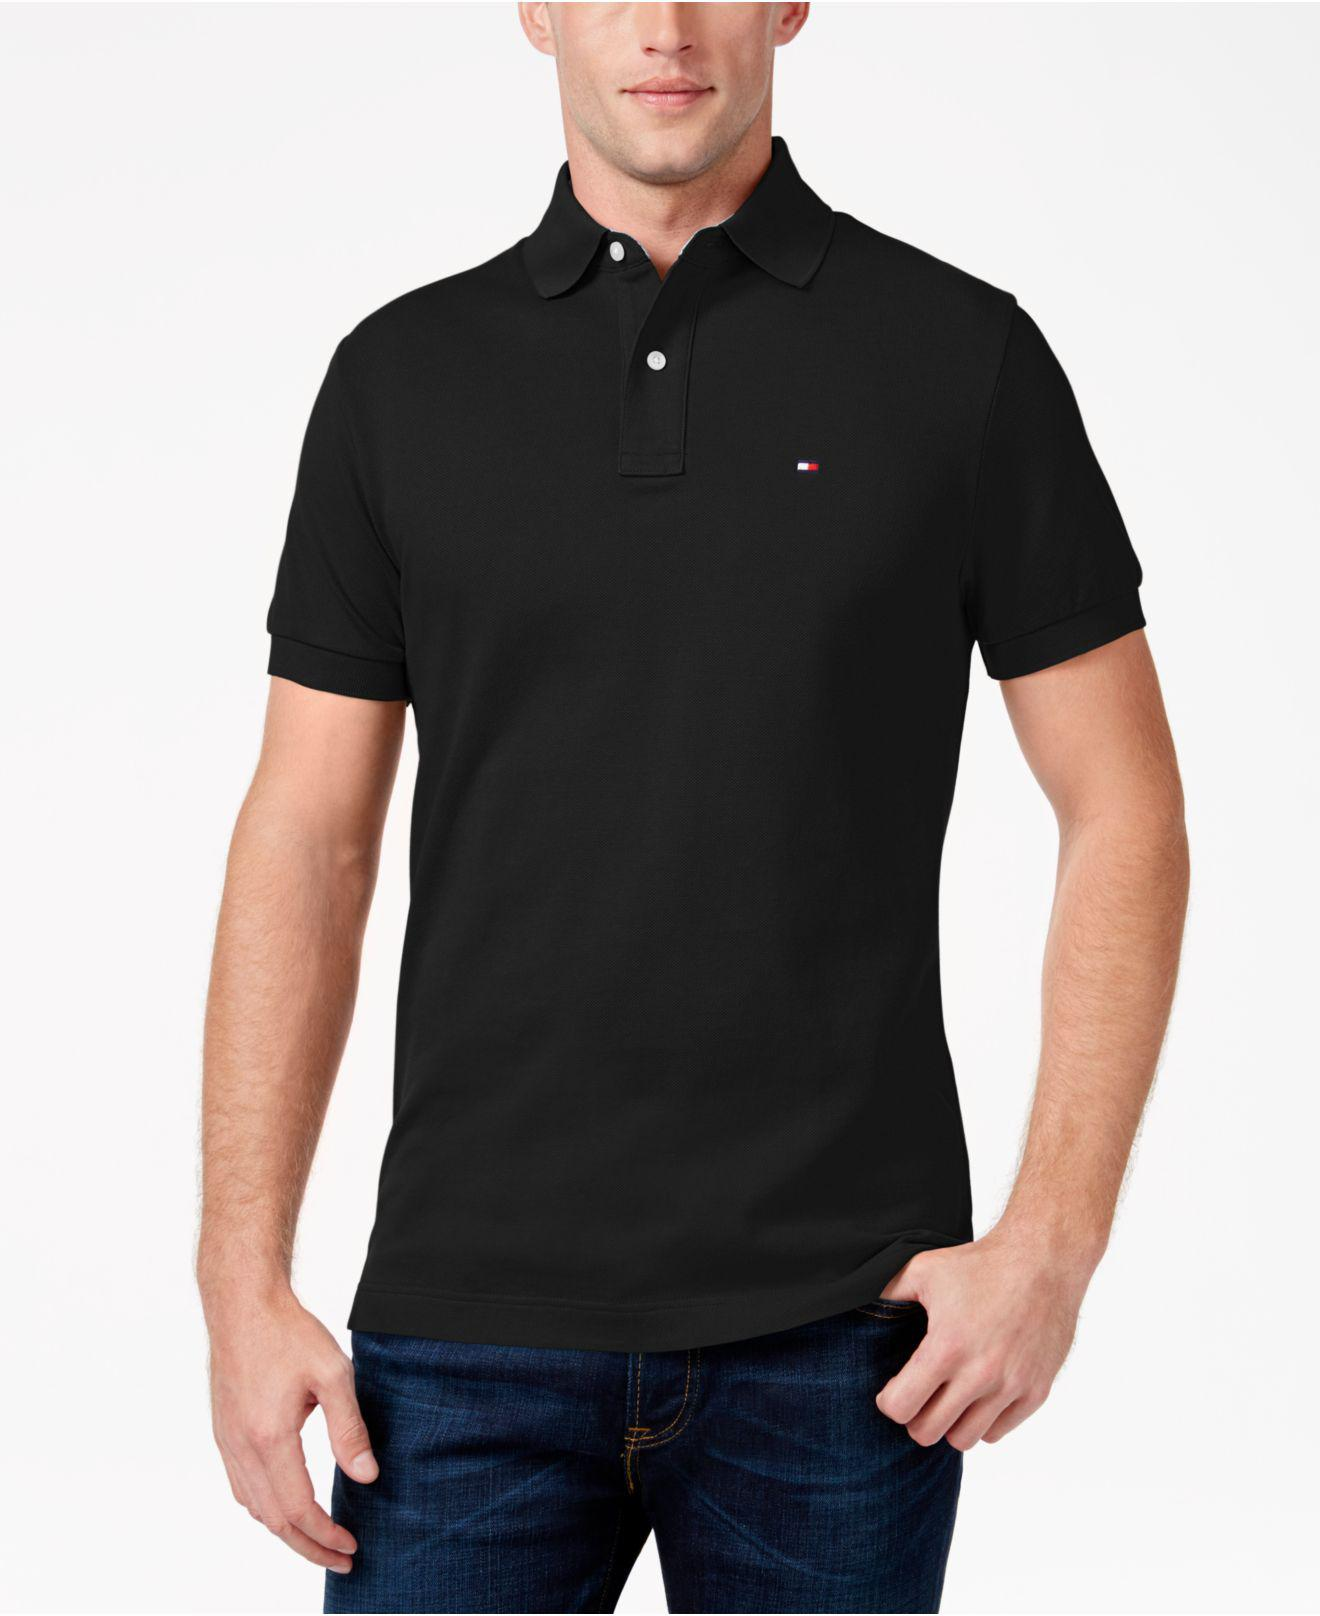 a468f0f9fc38f Black Polo Shirt Macys – EDGE Engineering and Consulting Limited